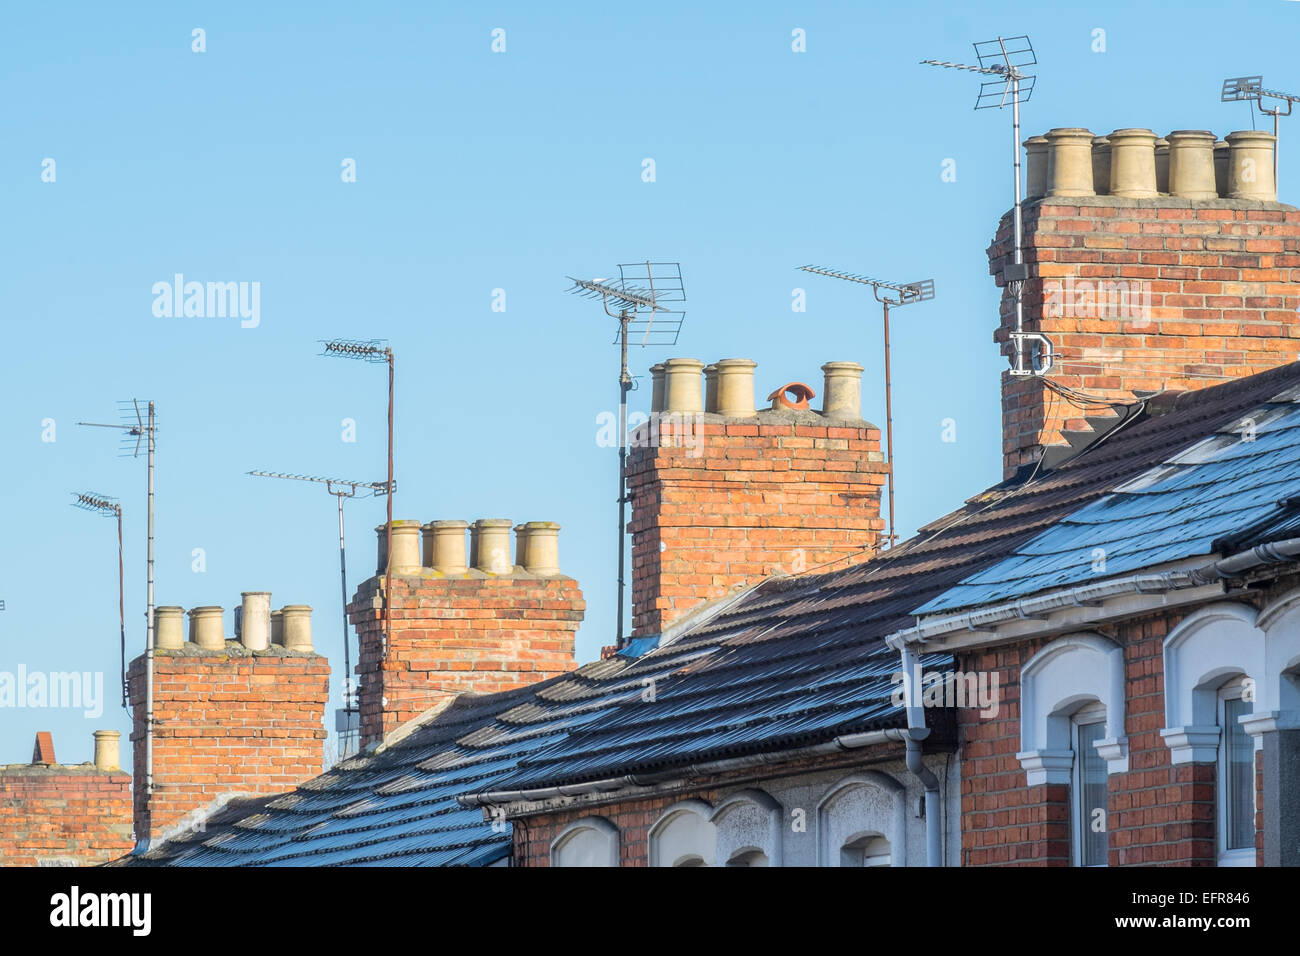 The rooftops, chimneys & TV aerials of  typical Victorian, terraced homes in a UK, Suburban street on a clear - Stock Image